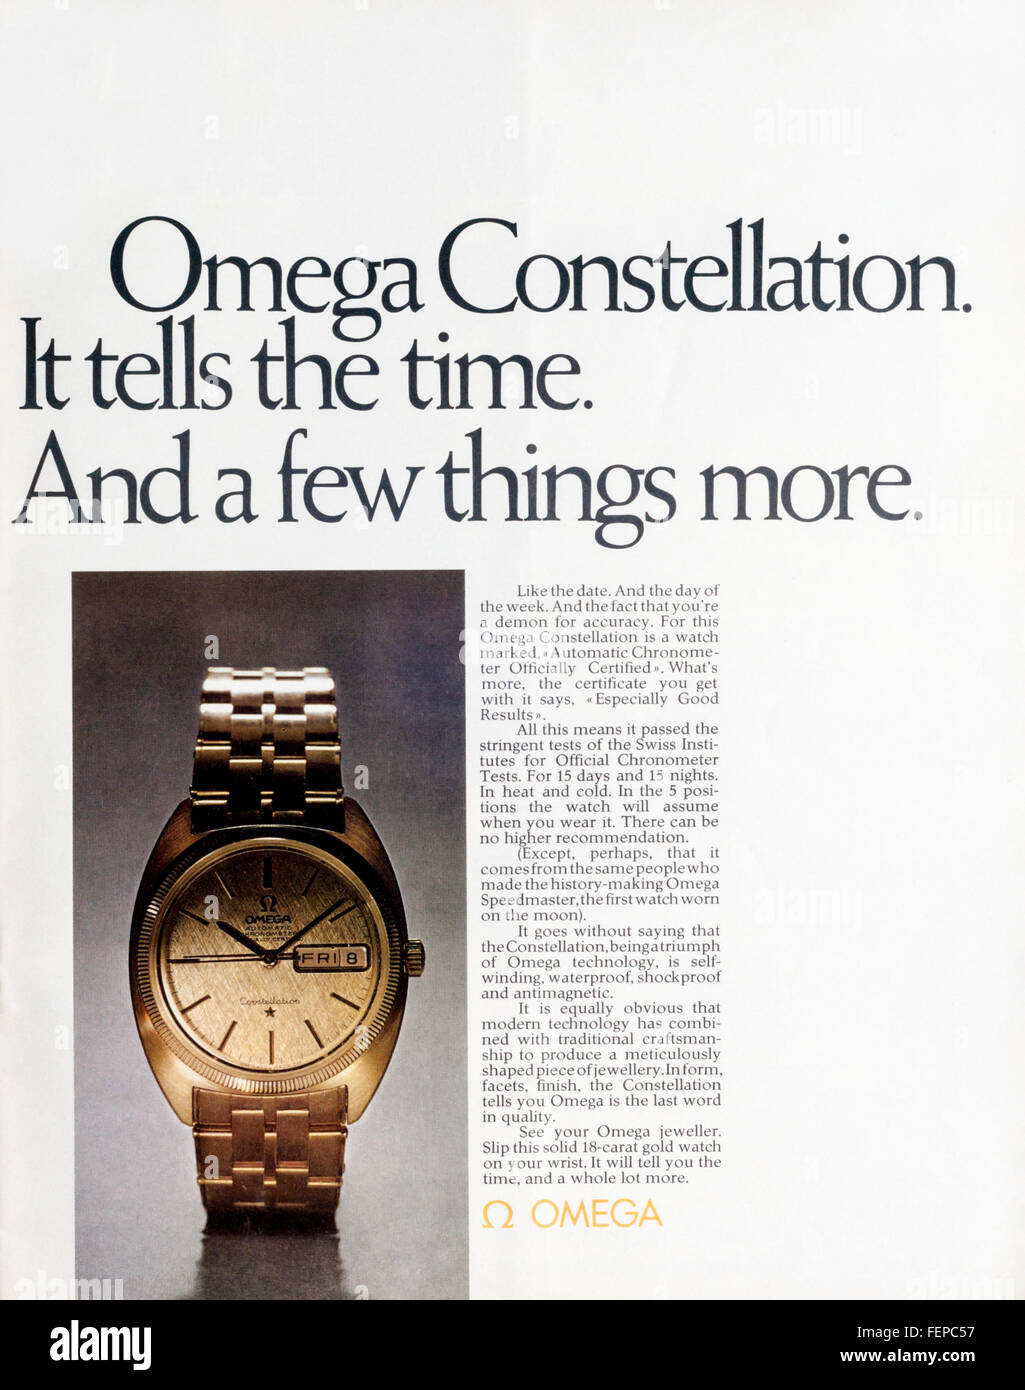 1970s advert advertising Omega Constellation watches. - Stock Image